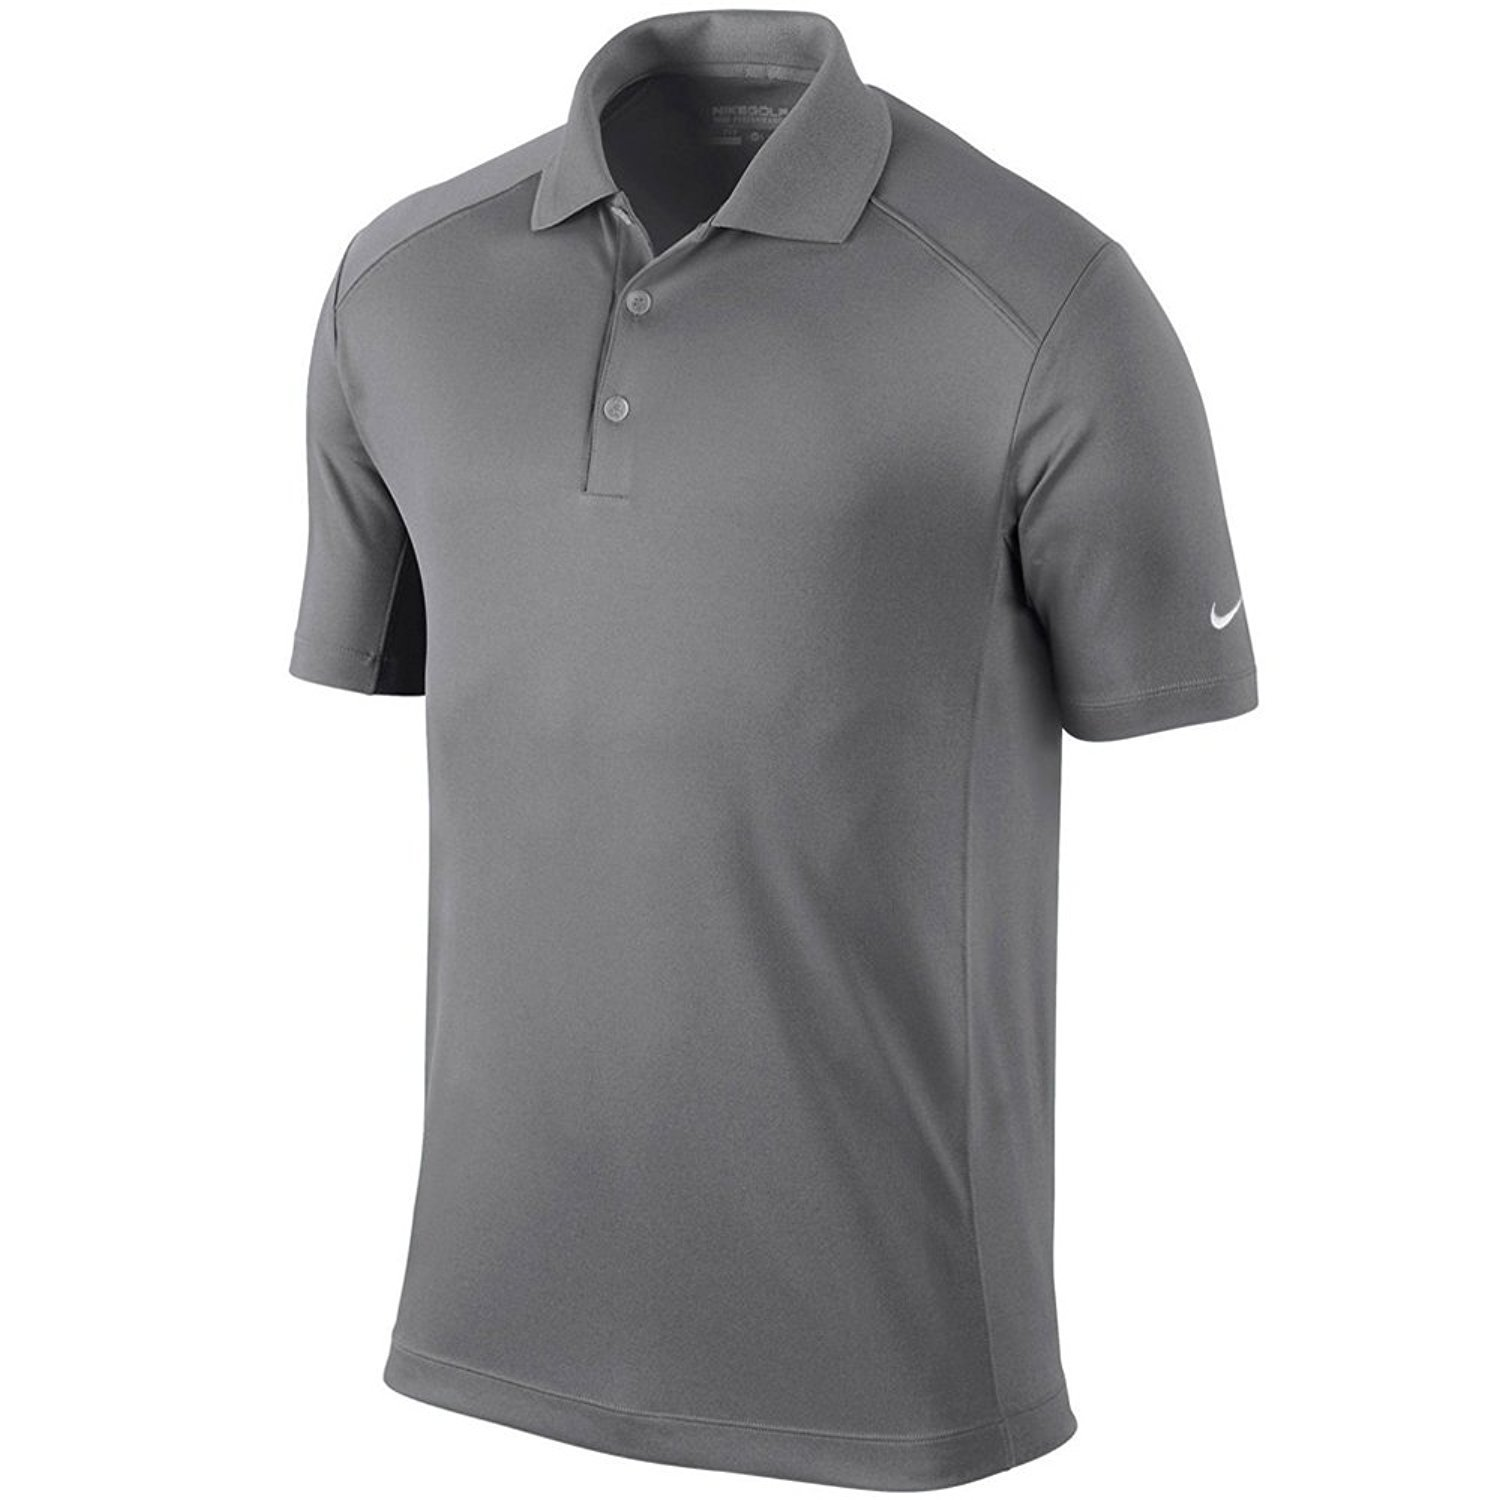 b5322783e Amazon.com: Nike Golf Men's Victory Dri-Fit Solid Polo Grey 818050 093 (m):  Sports & Outdoors